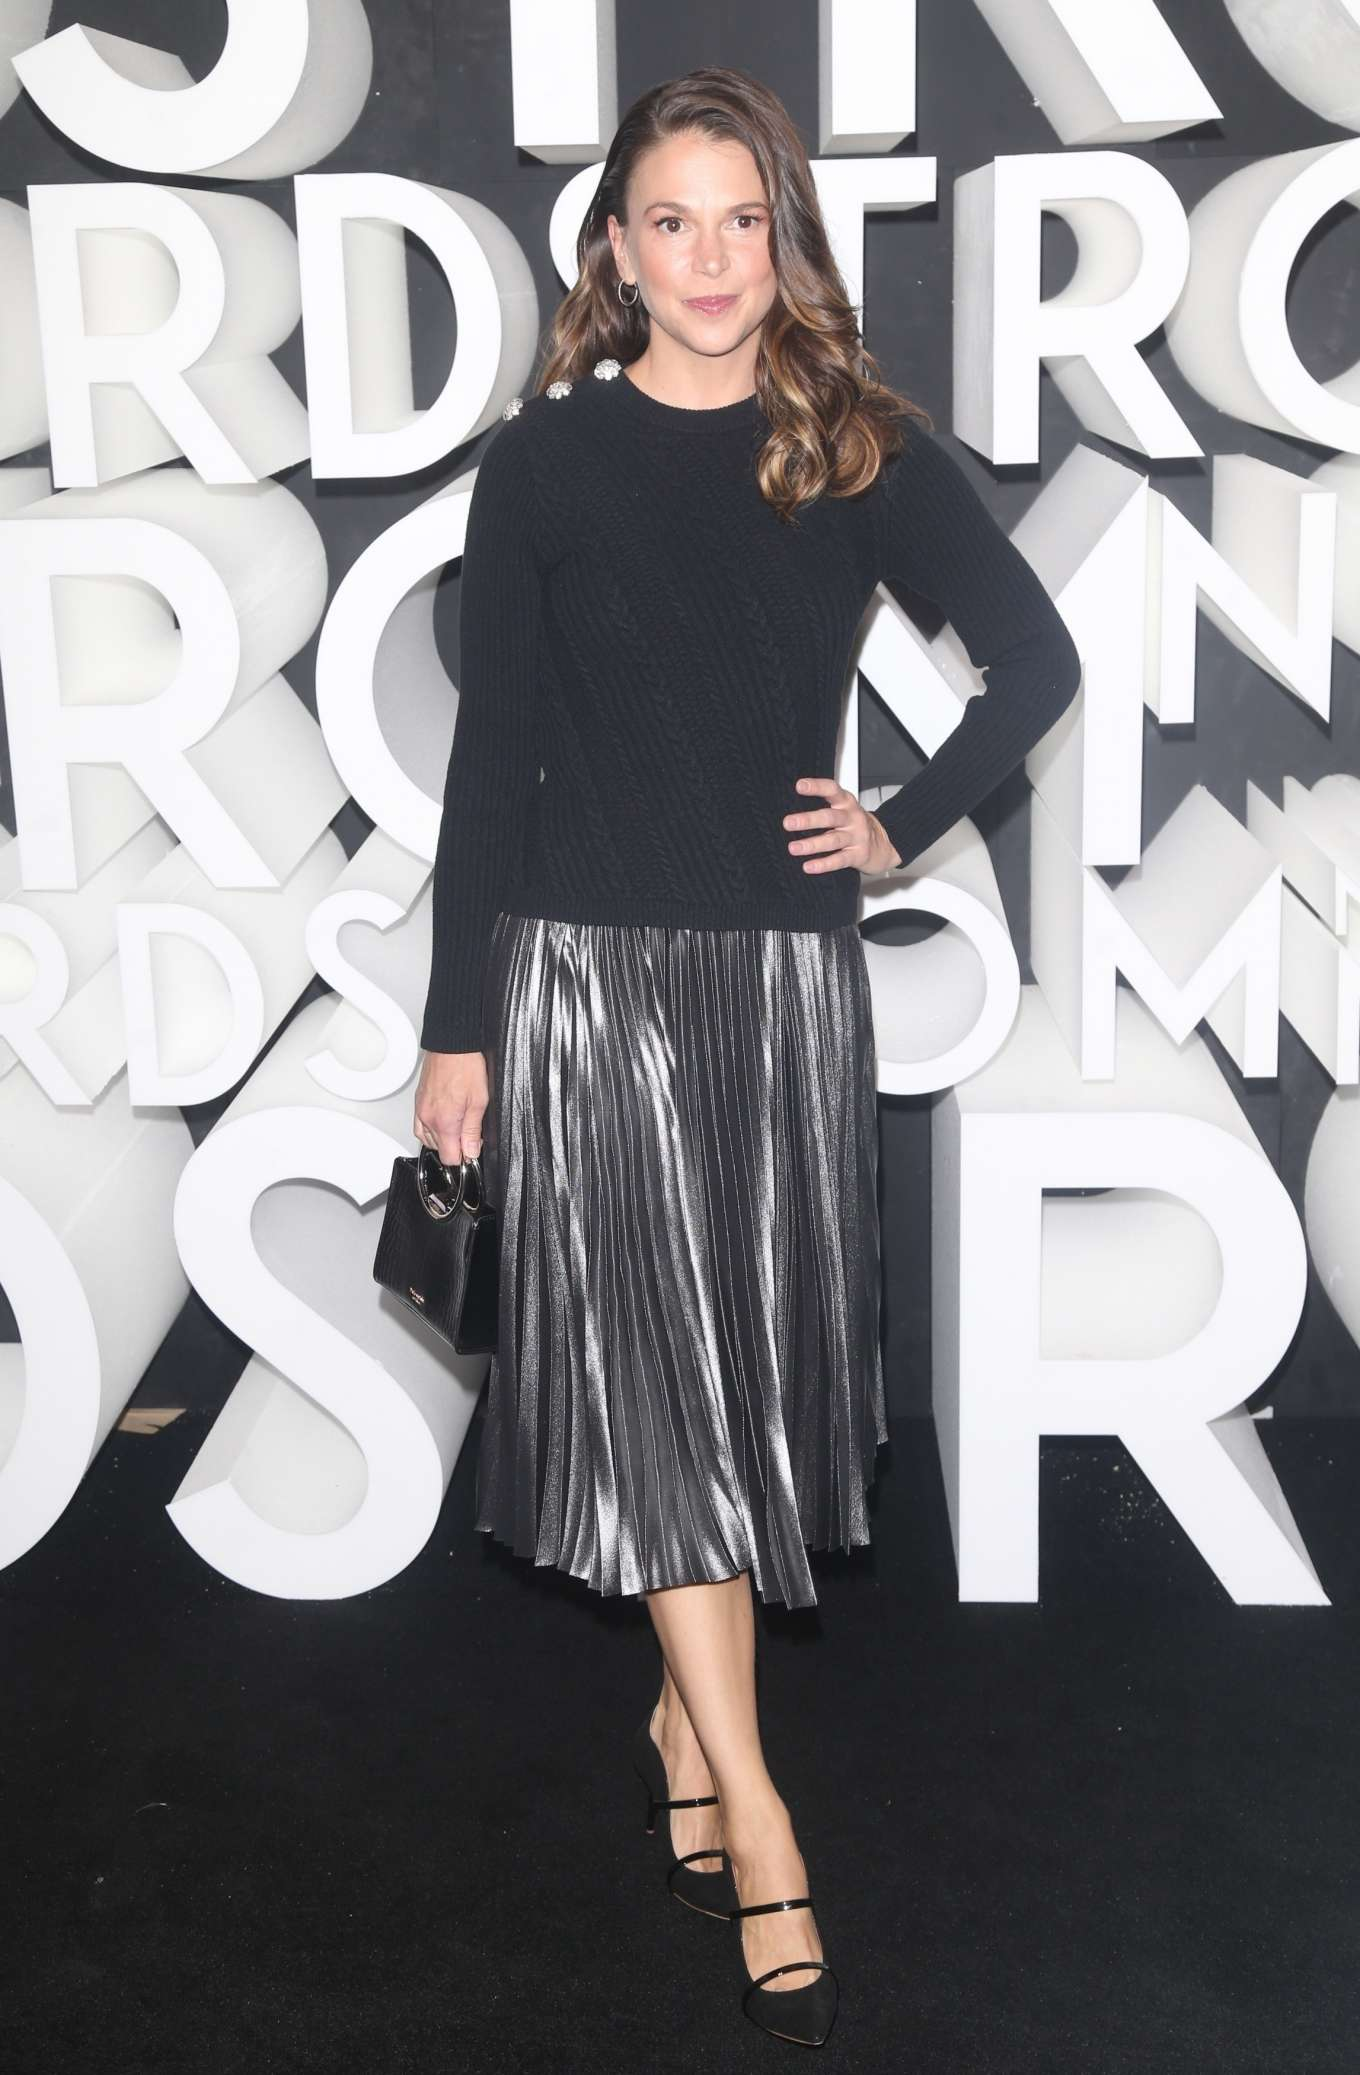 Sutton Foster - Nordstrom Grand Opening in New York City